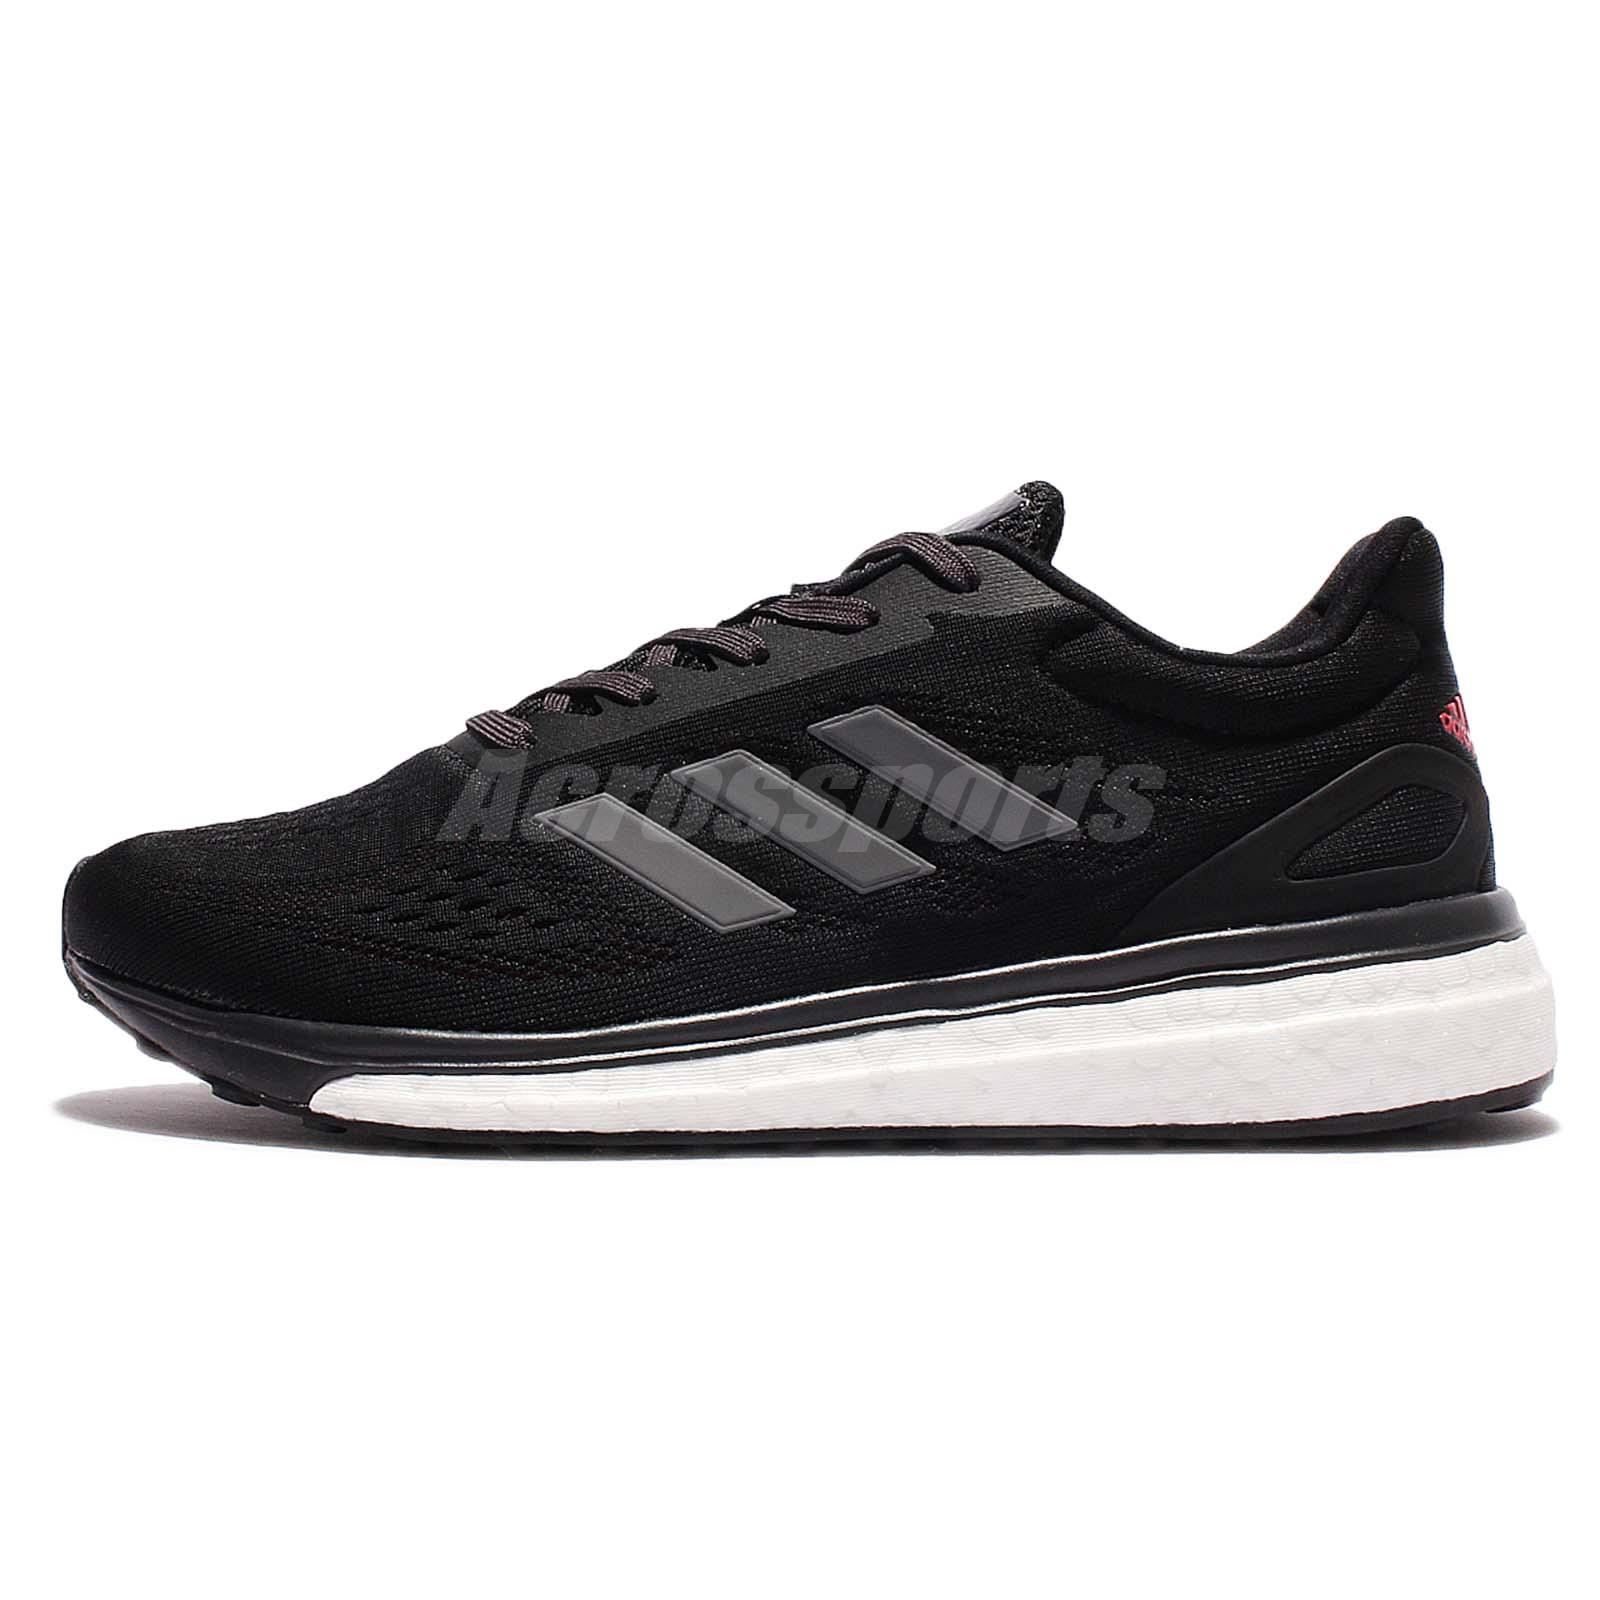 adidas response boost women's black